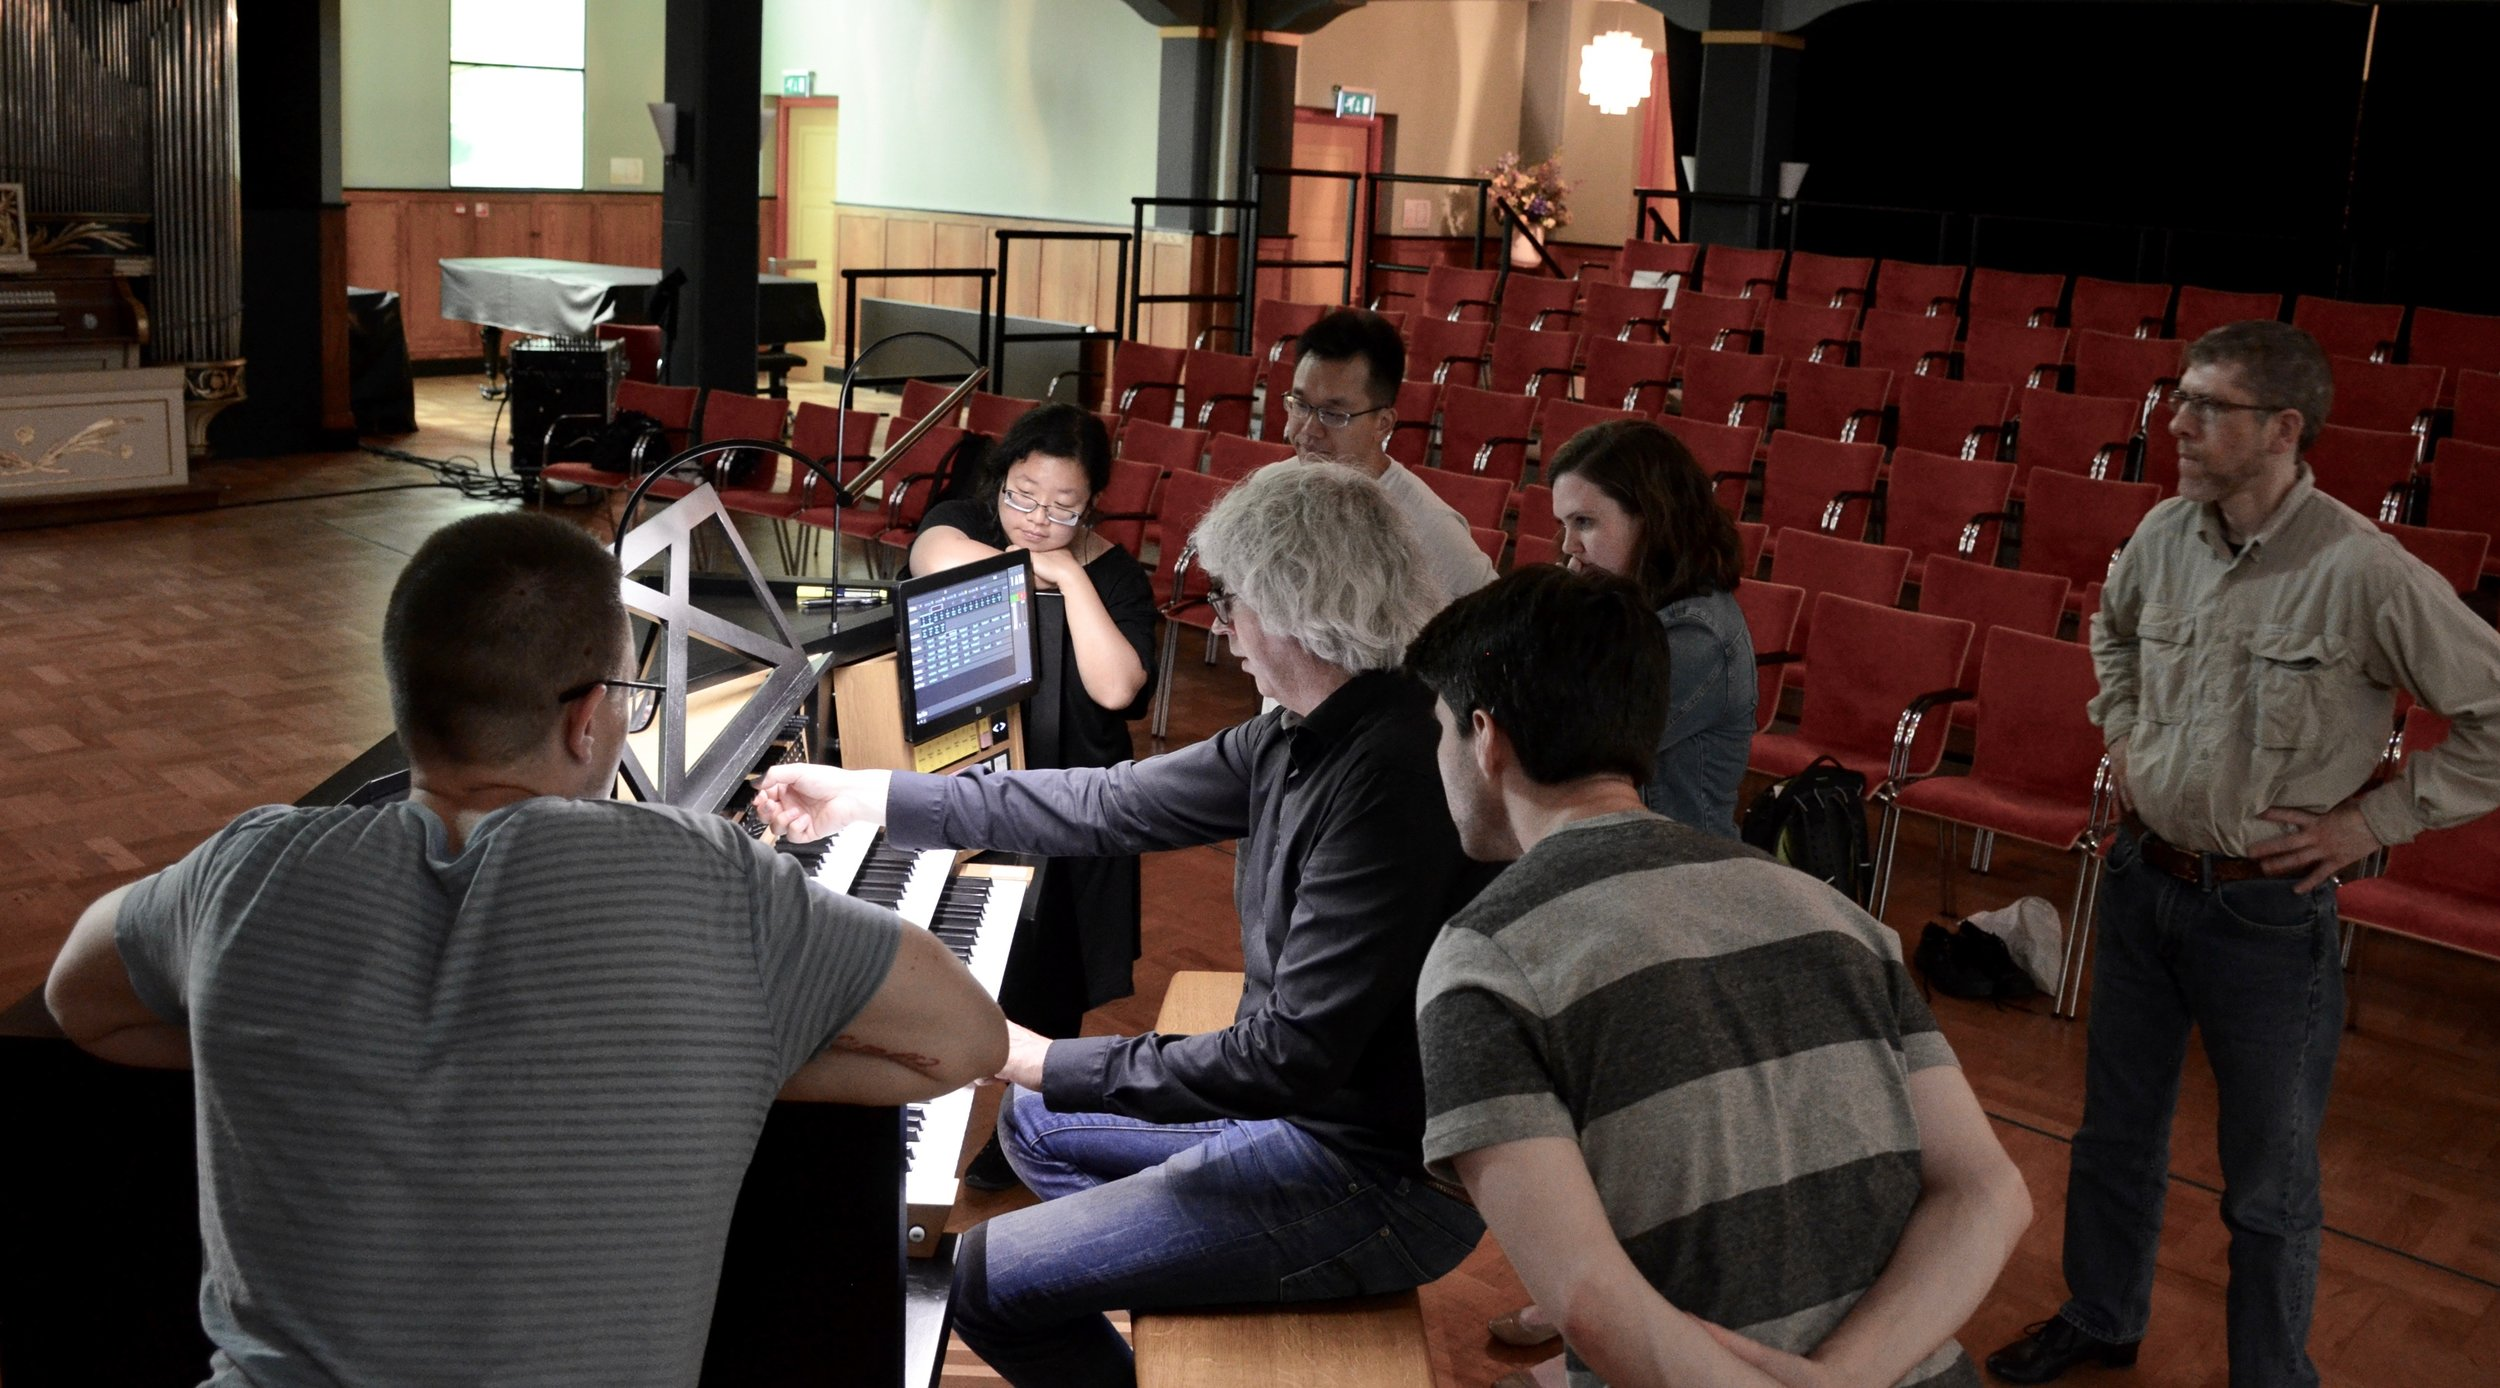 Hans Fidom, director of the Orgelpark in Amsterdam, demonstrates the MIDI functionality of the new Baroque organ.